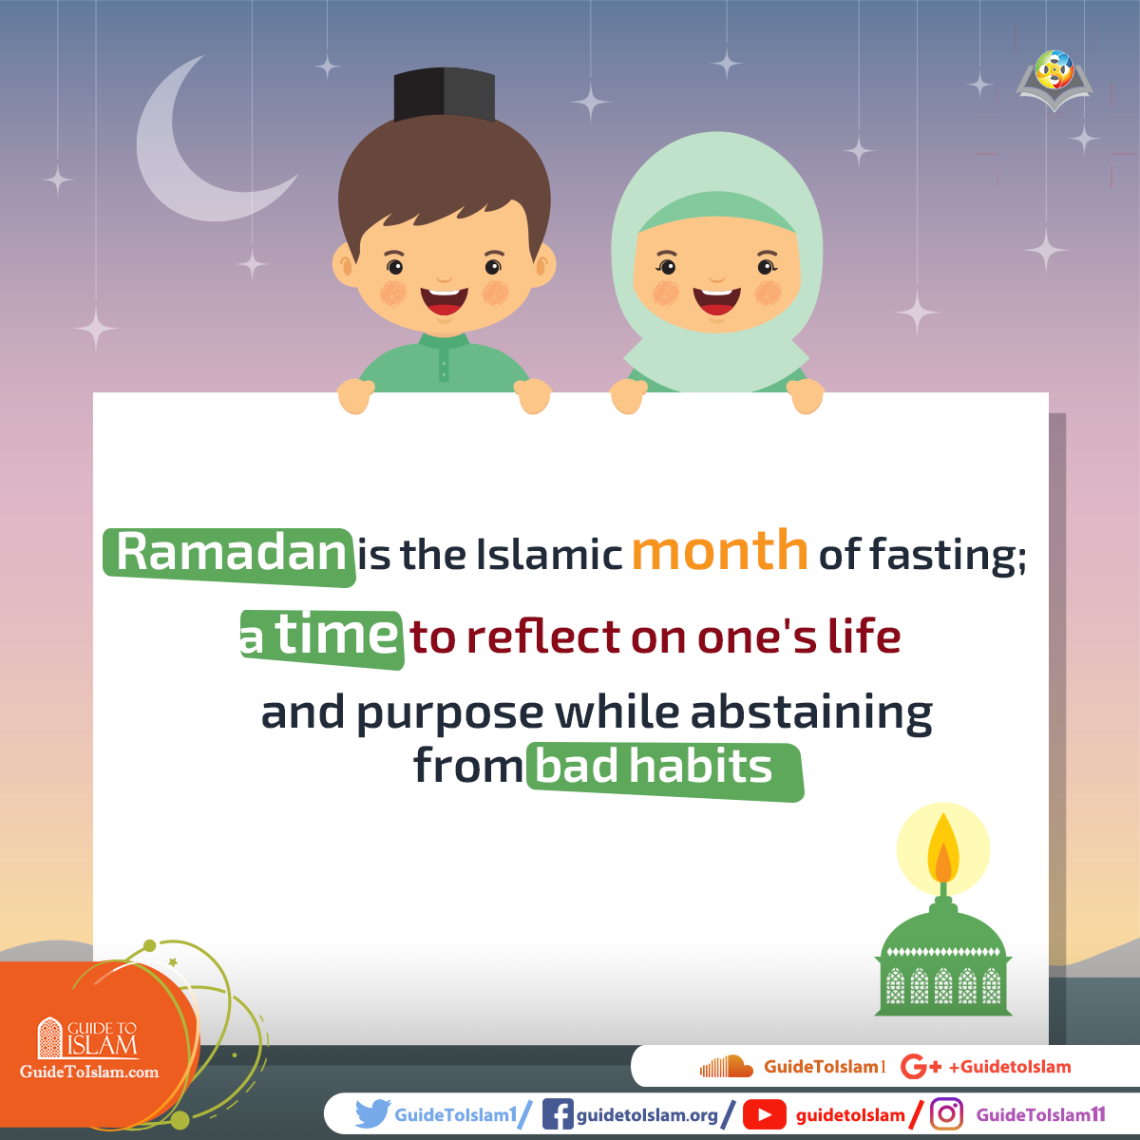 Ramadan is the Islamic month of fasting